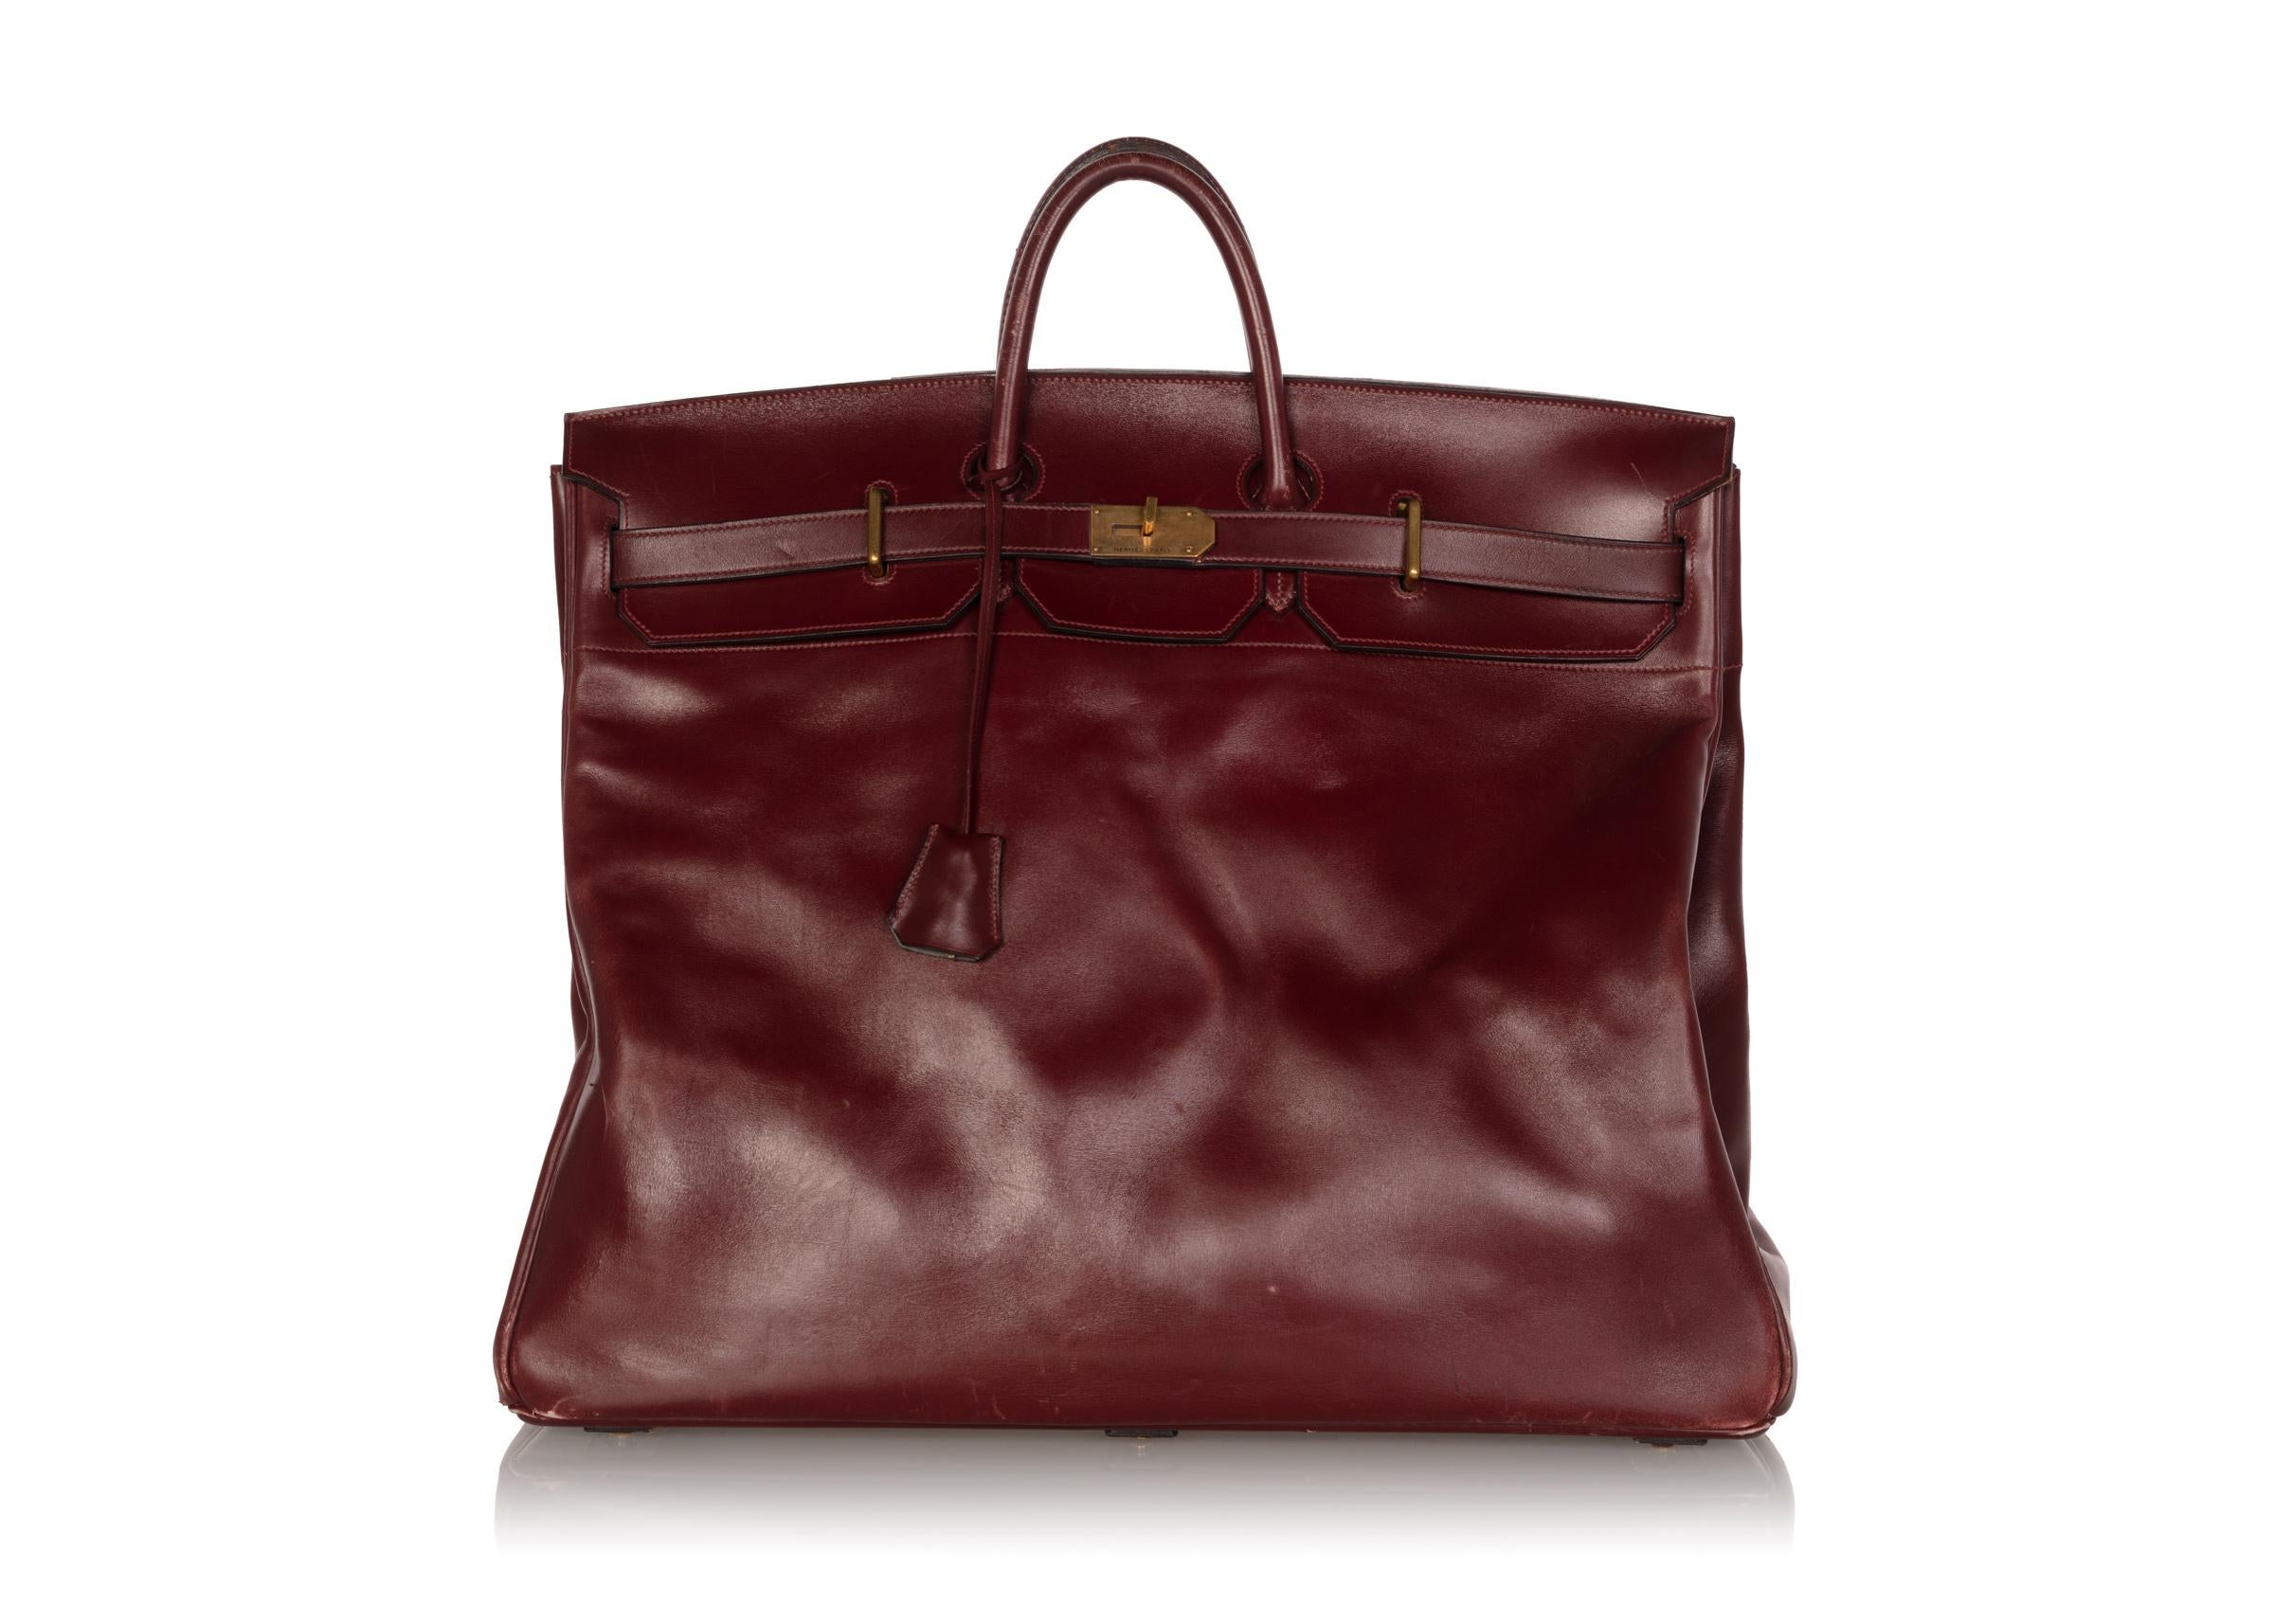 18117cc163f Hermes Bonwit Teller Vintage Burgundy Travel Birkin Bag, 1970s For Sale at  1stdibs